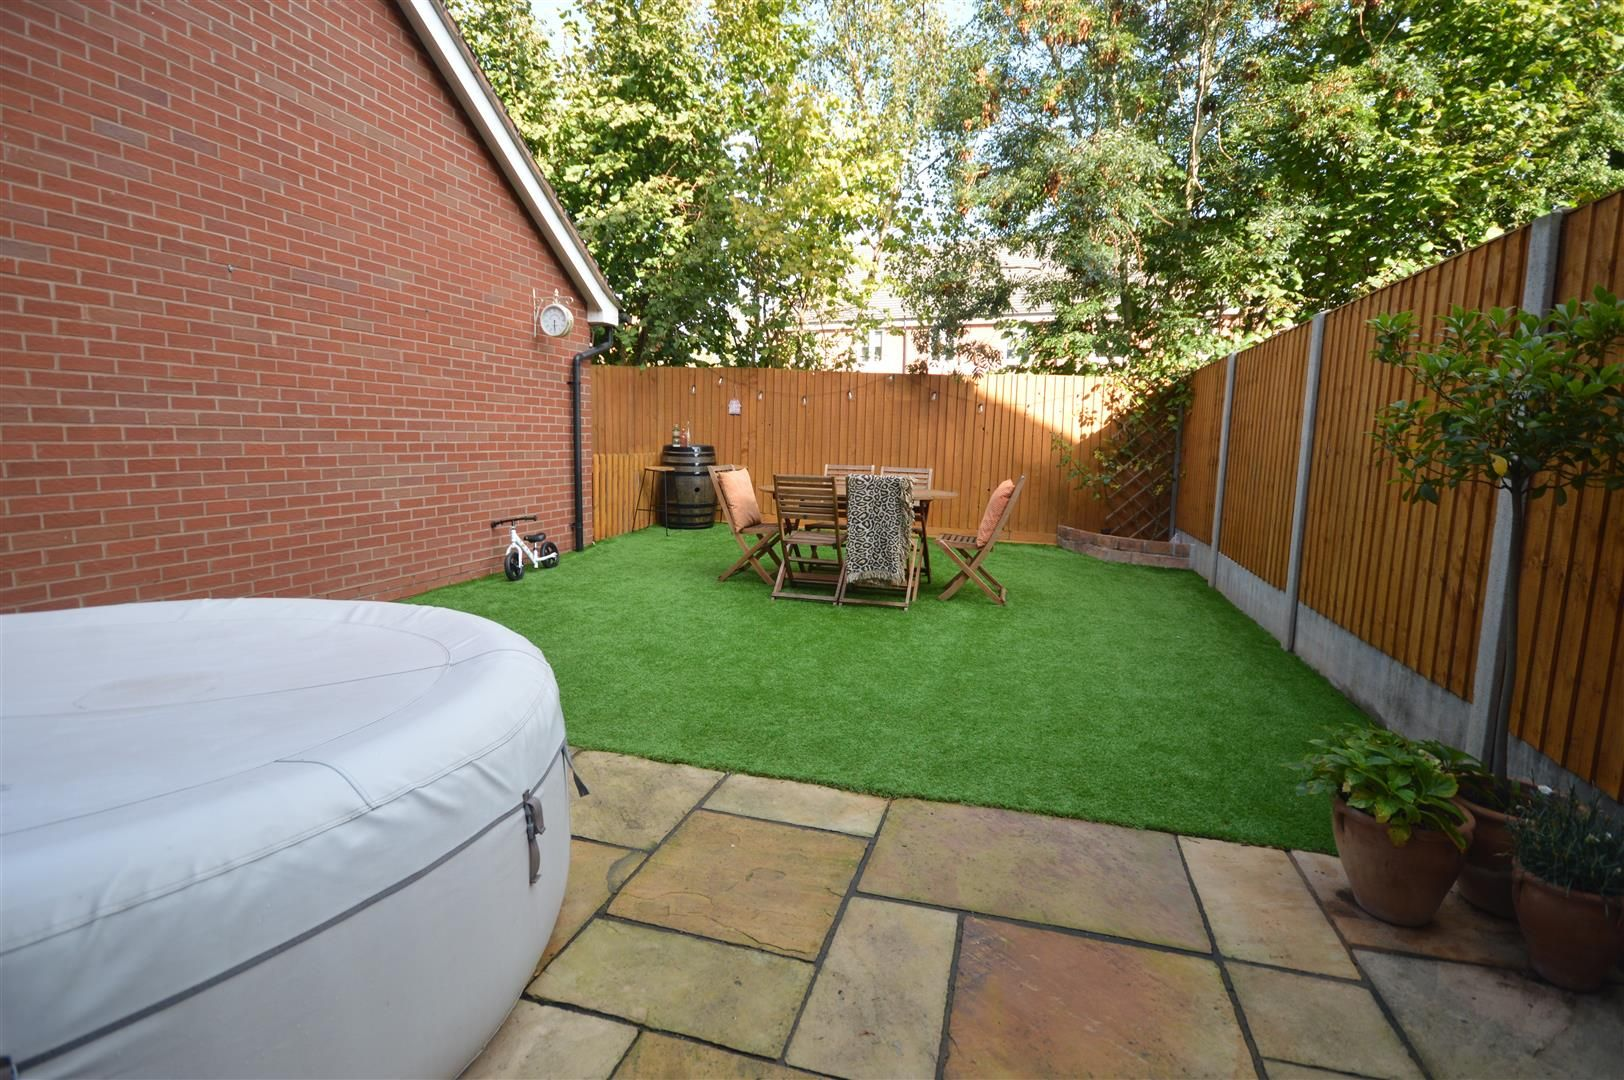 4 bed semi-detached for sale in Leominster  - Property Image 18